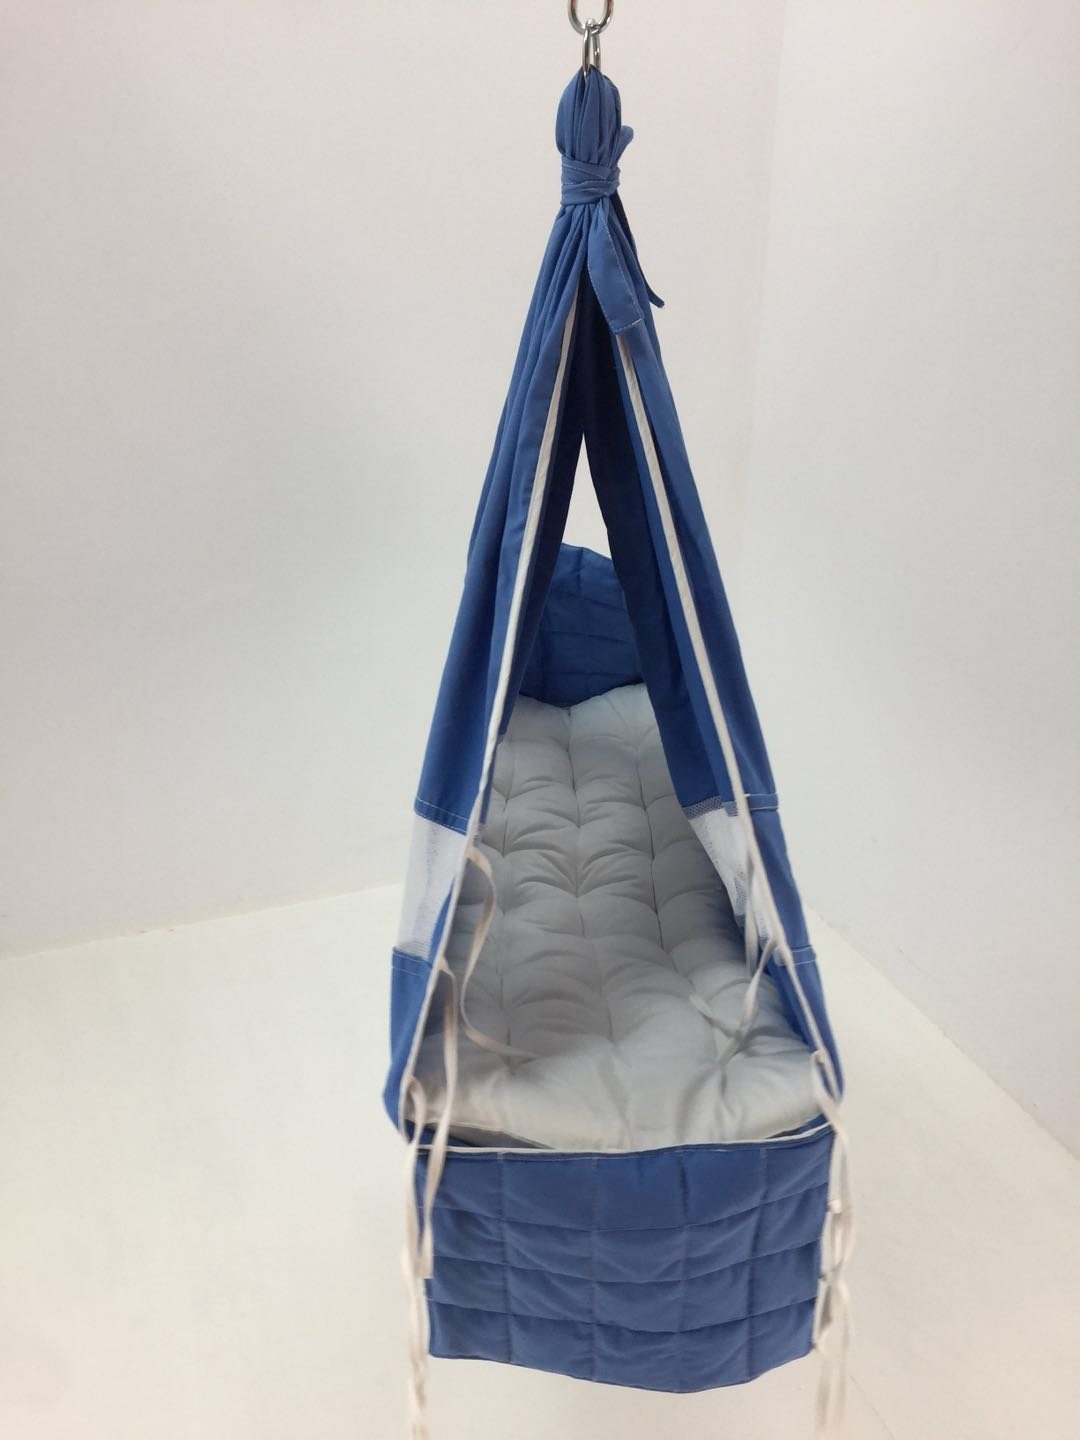 Debris time Baby Hammock Baby Cot Baby Swing Without Metal Frame(blue)